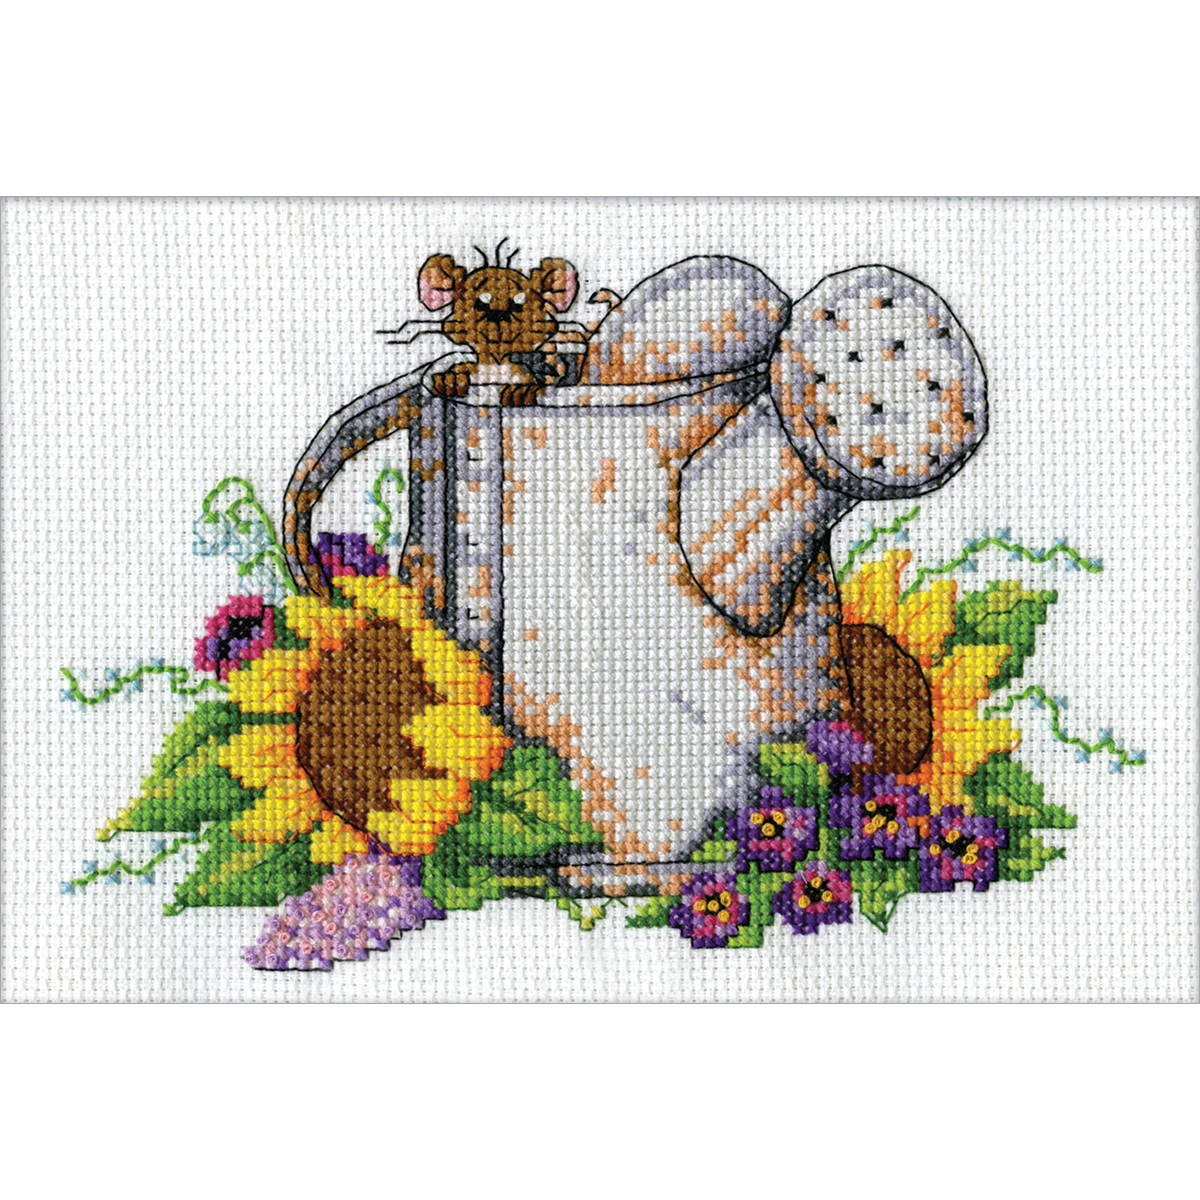 Counted cross stitch вышивка